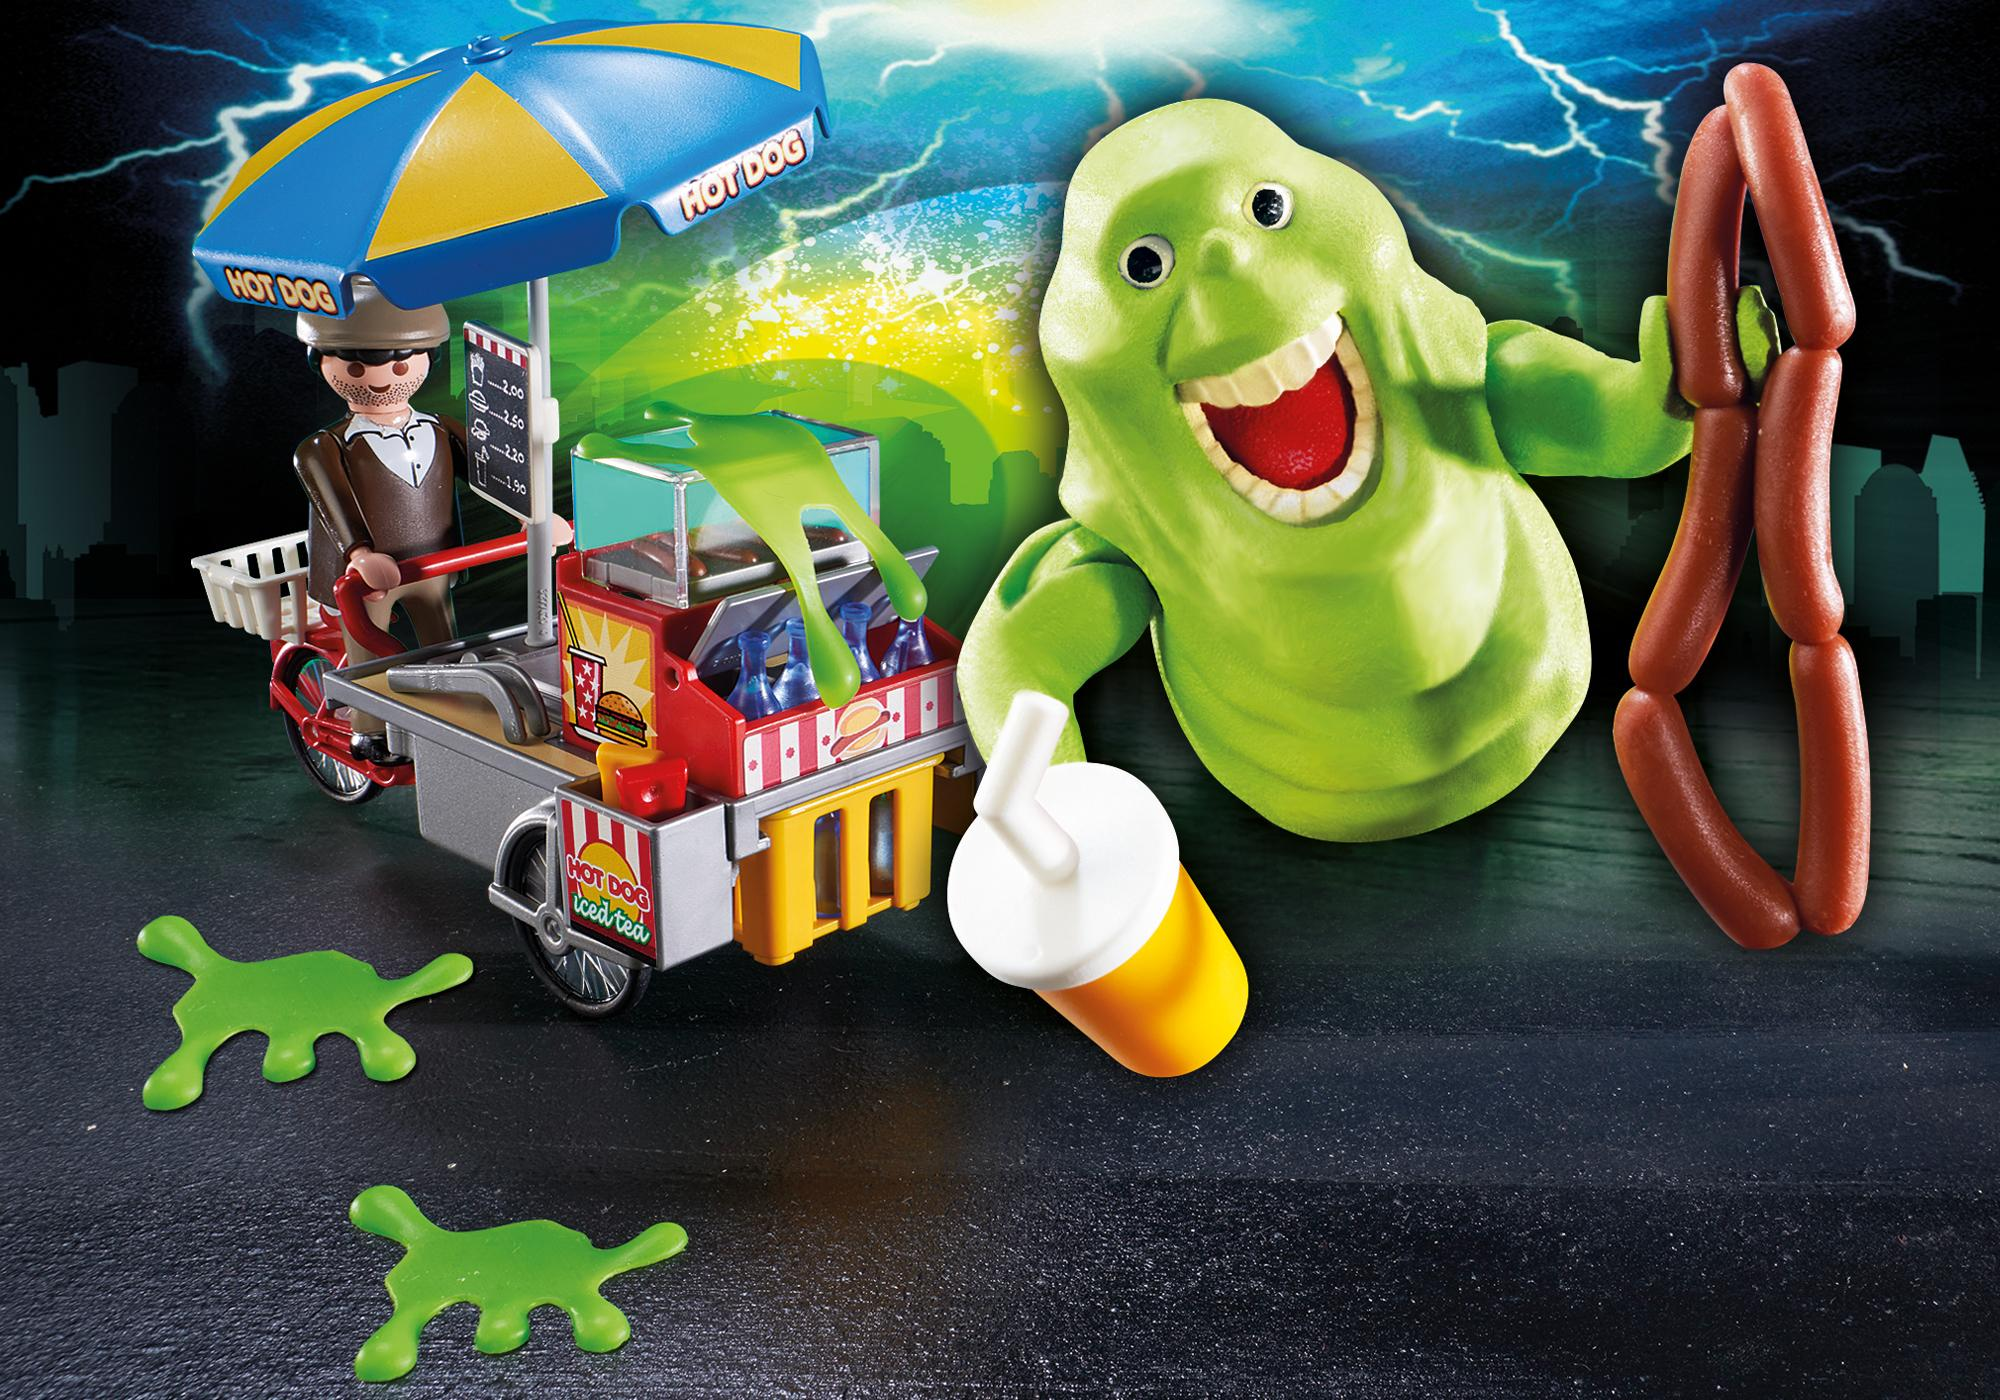 http://media.playmobil.com/i/playmobil/9222_product_extra1/Slimer with Hot Dog Stand